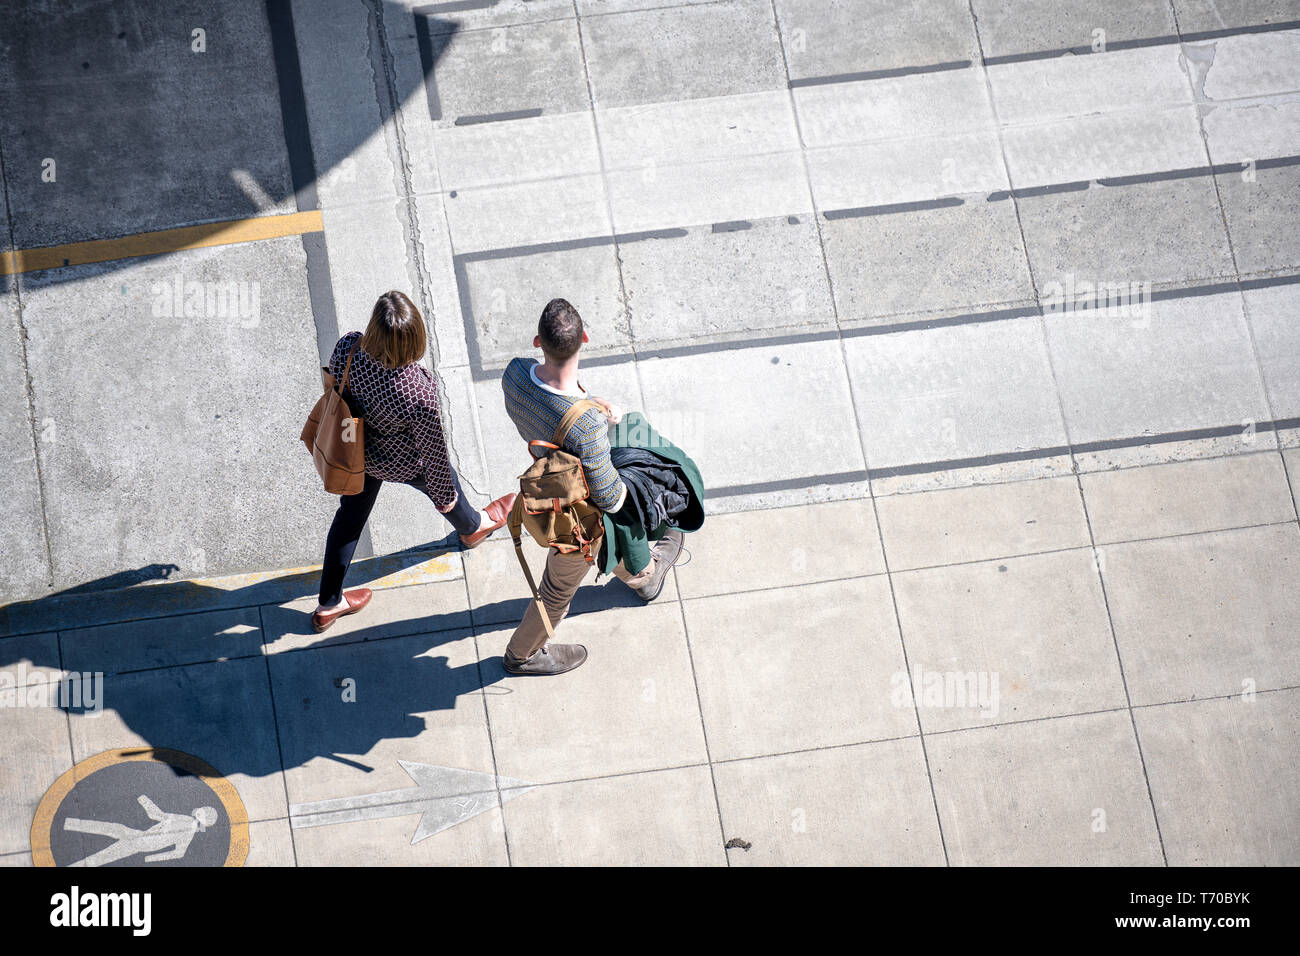 Couple a man with backpack and a woman with bag are confidently walking along the footpath with markings on the sidewalk preferring to move actively t - Stock Image